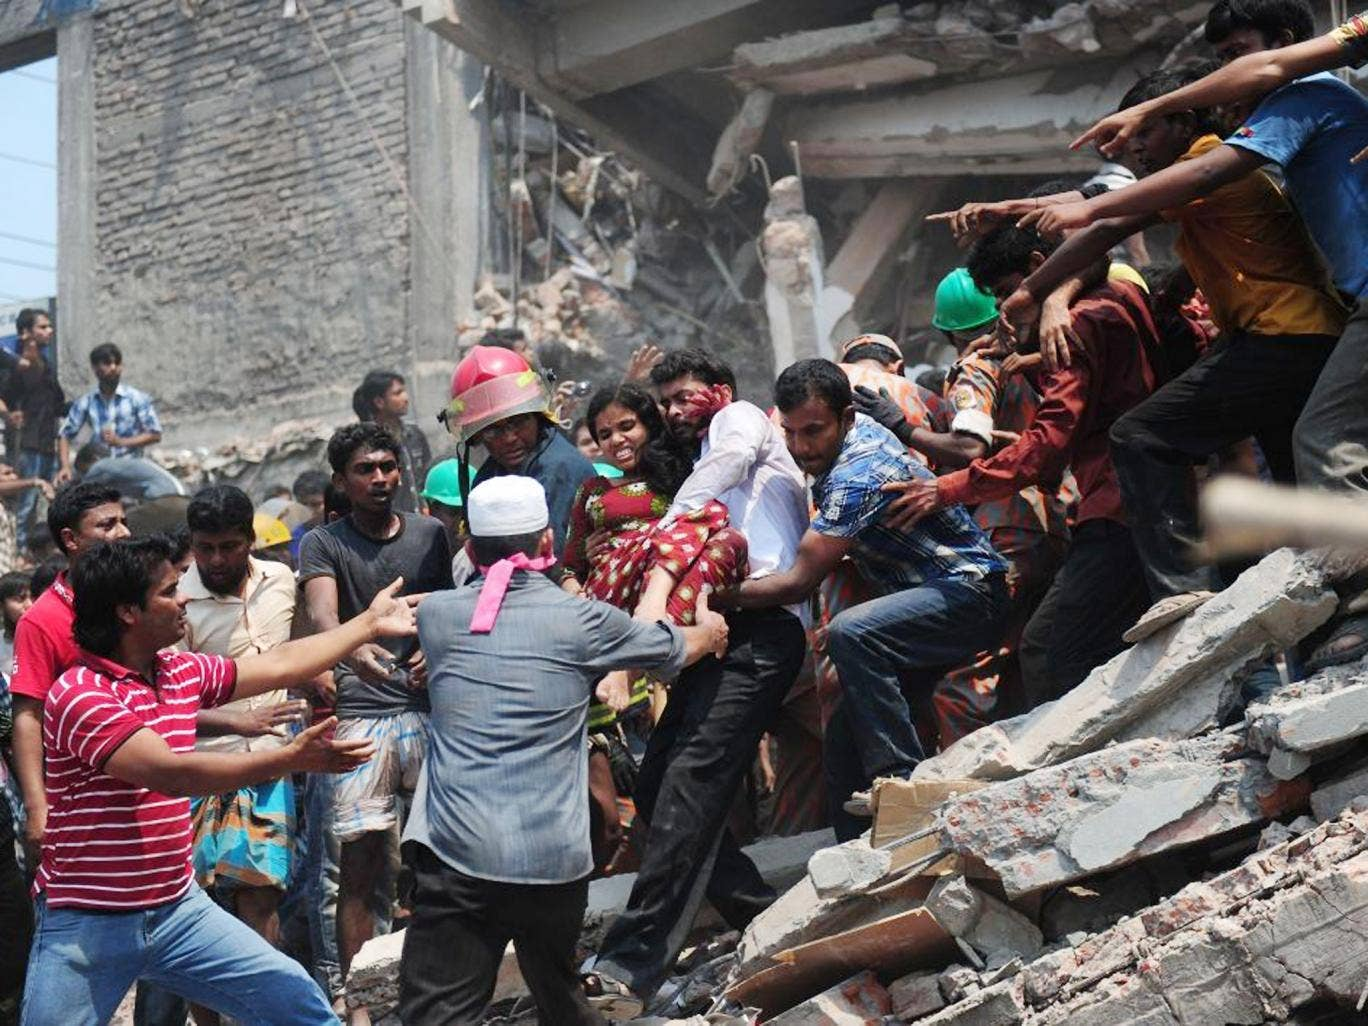 Bangladeshi volunteers evacuate an injured garment worker after an eight-storey building collapsed in Savar, on the outskirts of Dhaka